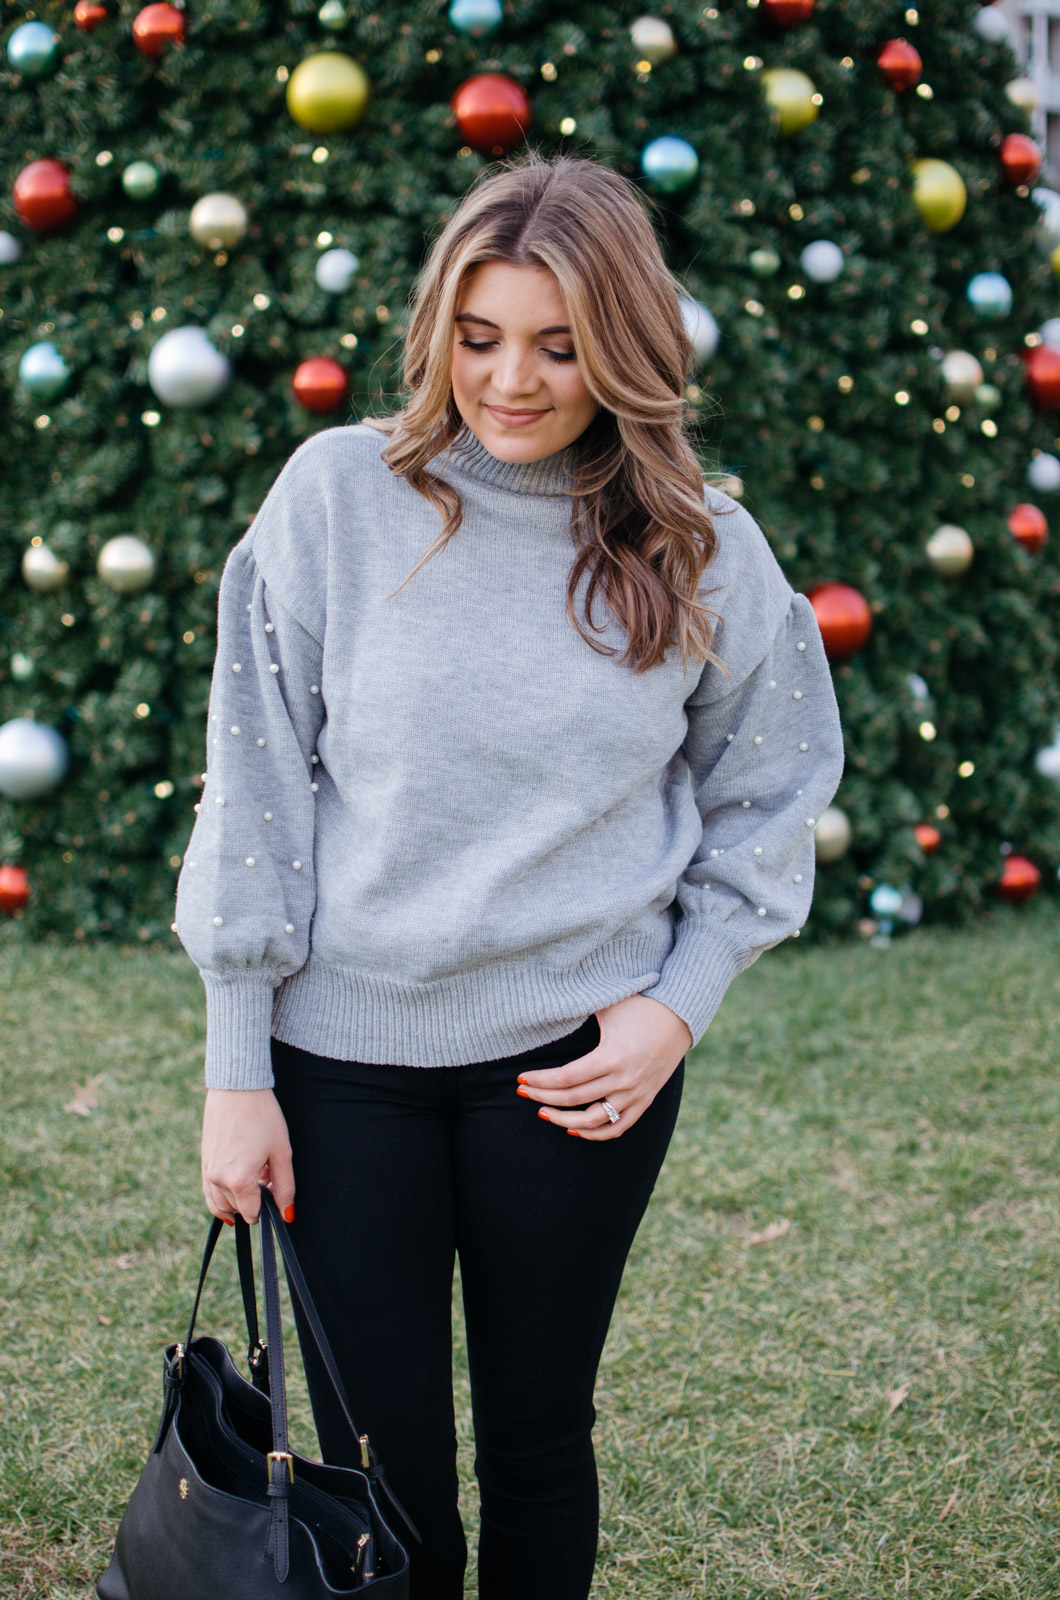 pearl sweater outfit for winter | For more winter outfit ideas, head to bylaurenm.com!